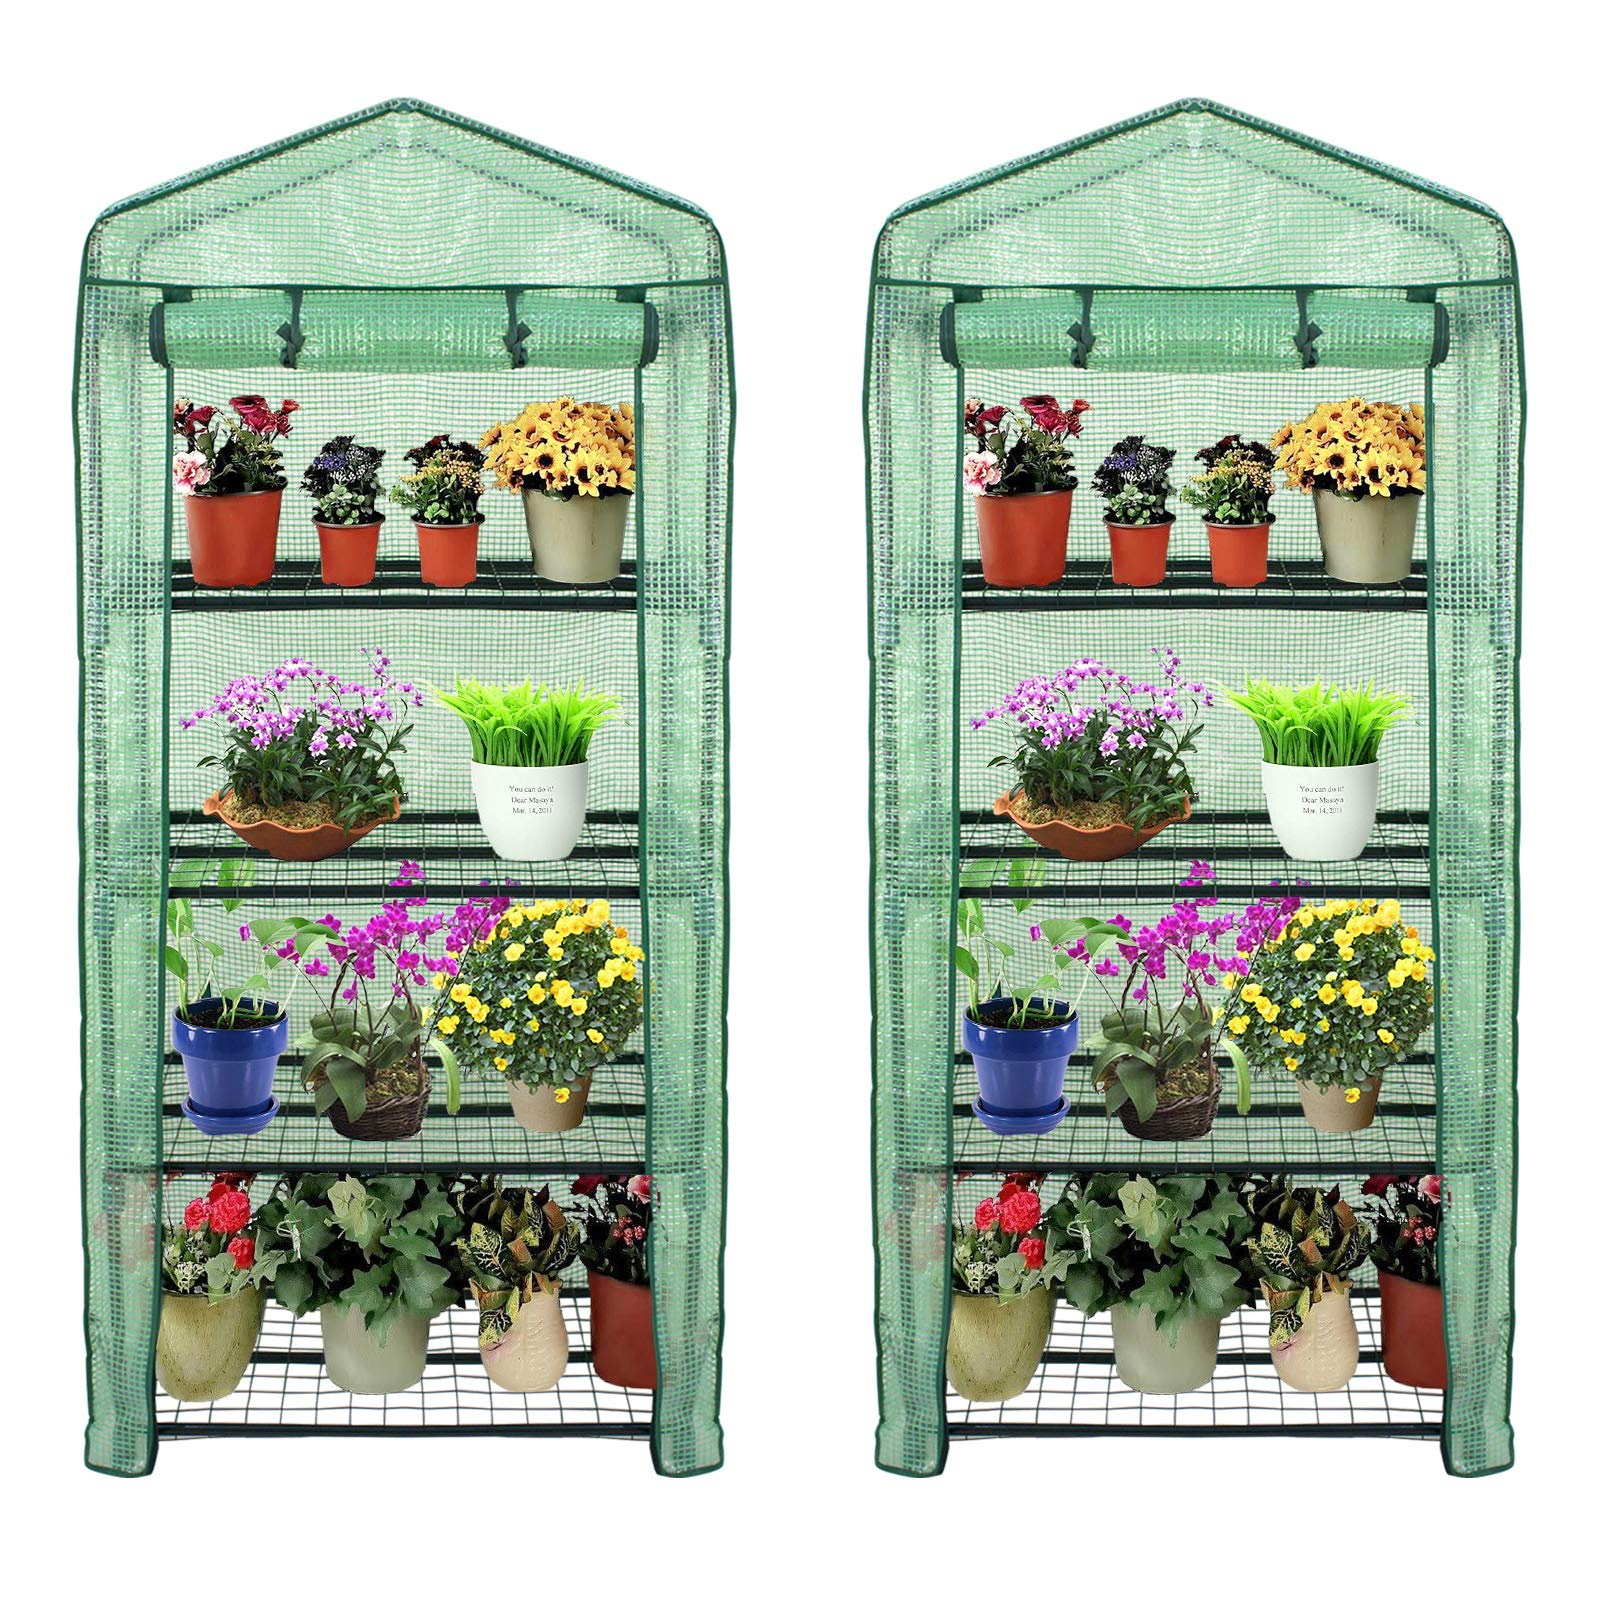 4 Tier Mini Greenhouse with PE Cover and Roll-Up Zipper Door, Waterproof Cloche Portable Greenhouse Tent-27.25'' L X 19'' W x 63'' H, Grow Seeds & Seedlings, Tend Potted Plants (2pcs)